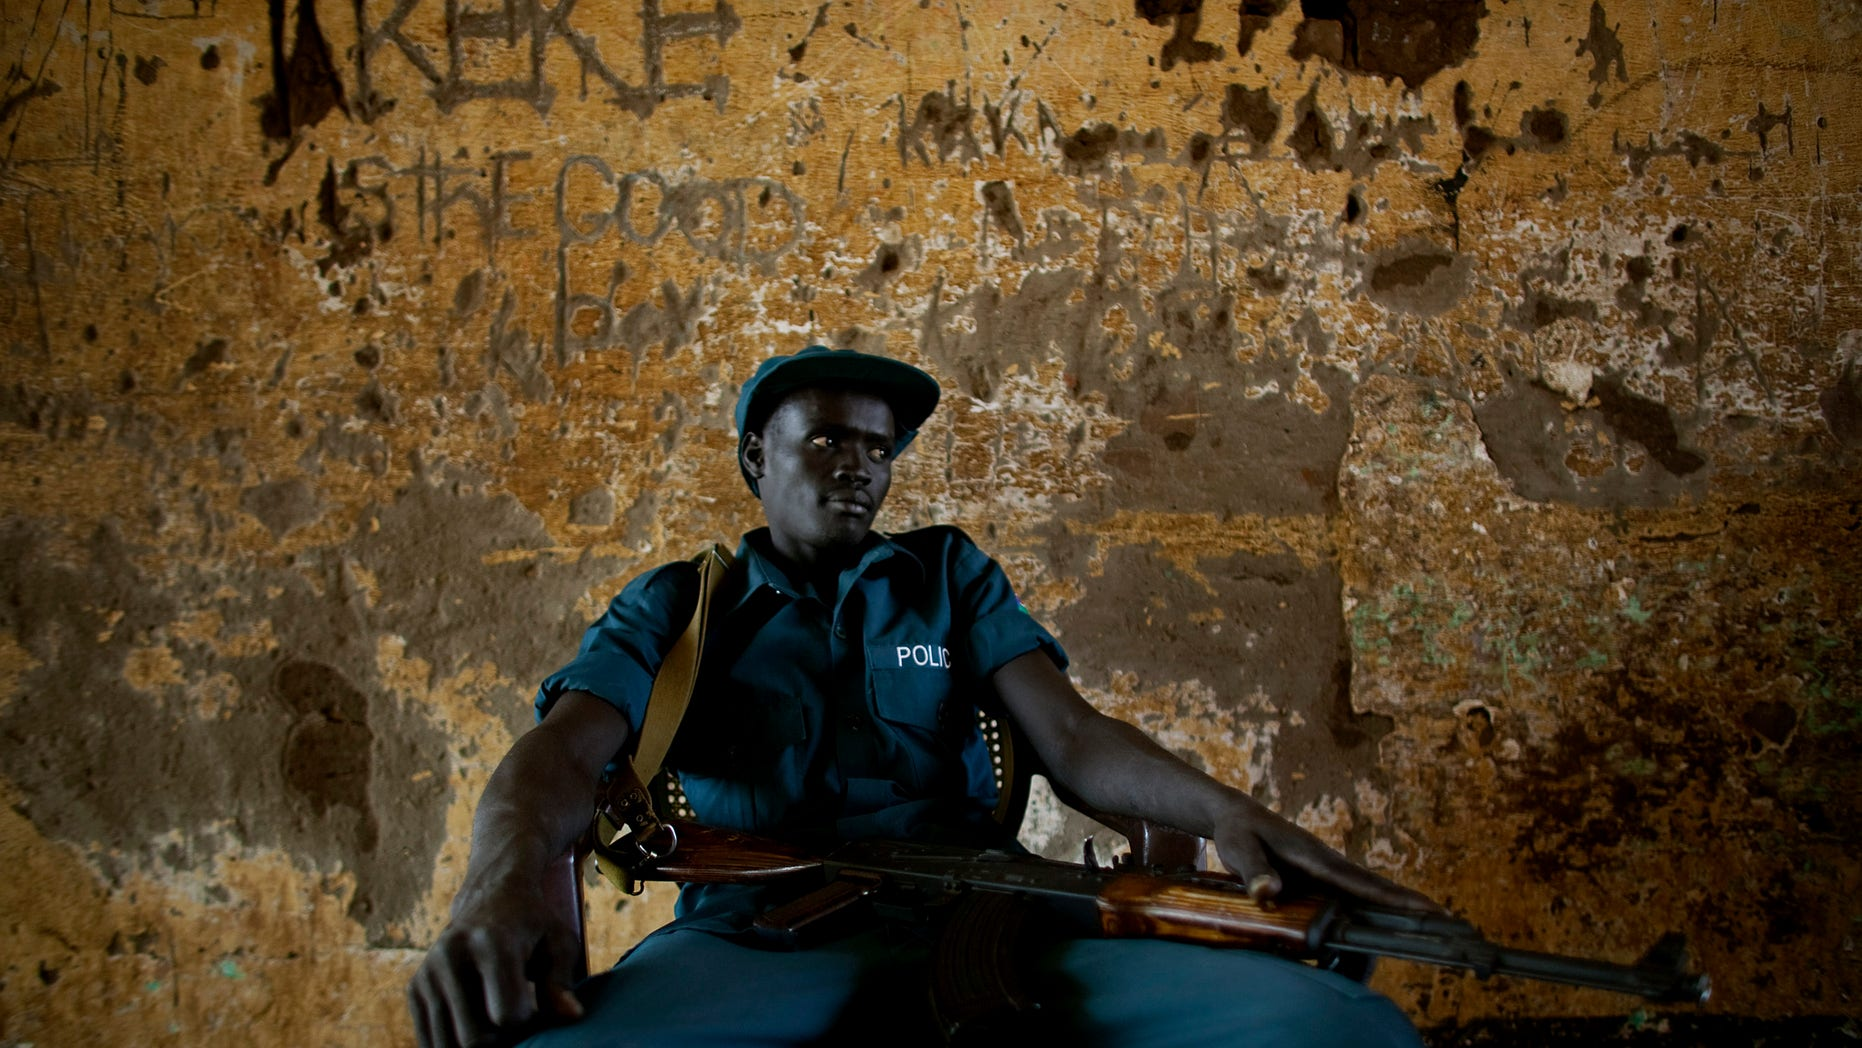 Jan. 9, 2011: A southern Sudanese police officer on security detail outside a polling station in the southern Sudanese capital of Juba. Women broke out in song and men wrapped themselves in flags as voters in Southern Sudan began casting ballots Sunday in a weeklong independence referendum likely to create the world's newest nation about five years after the end of a brutal civil war. The mainly Christian south is widely expected to secede from the mainly Muslim north, splitting Africa's largest country in two. (AP)